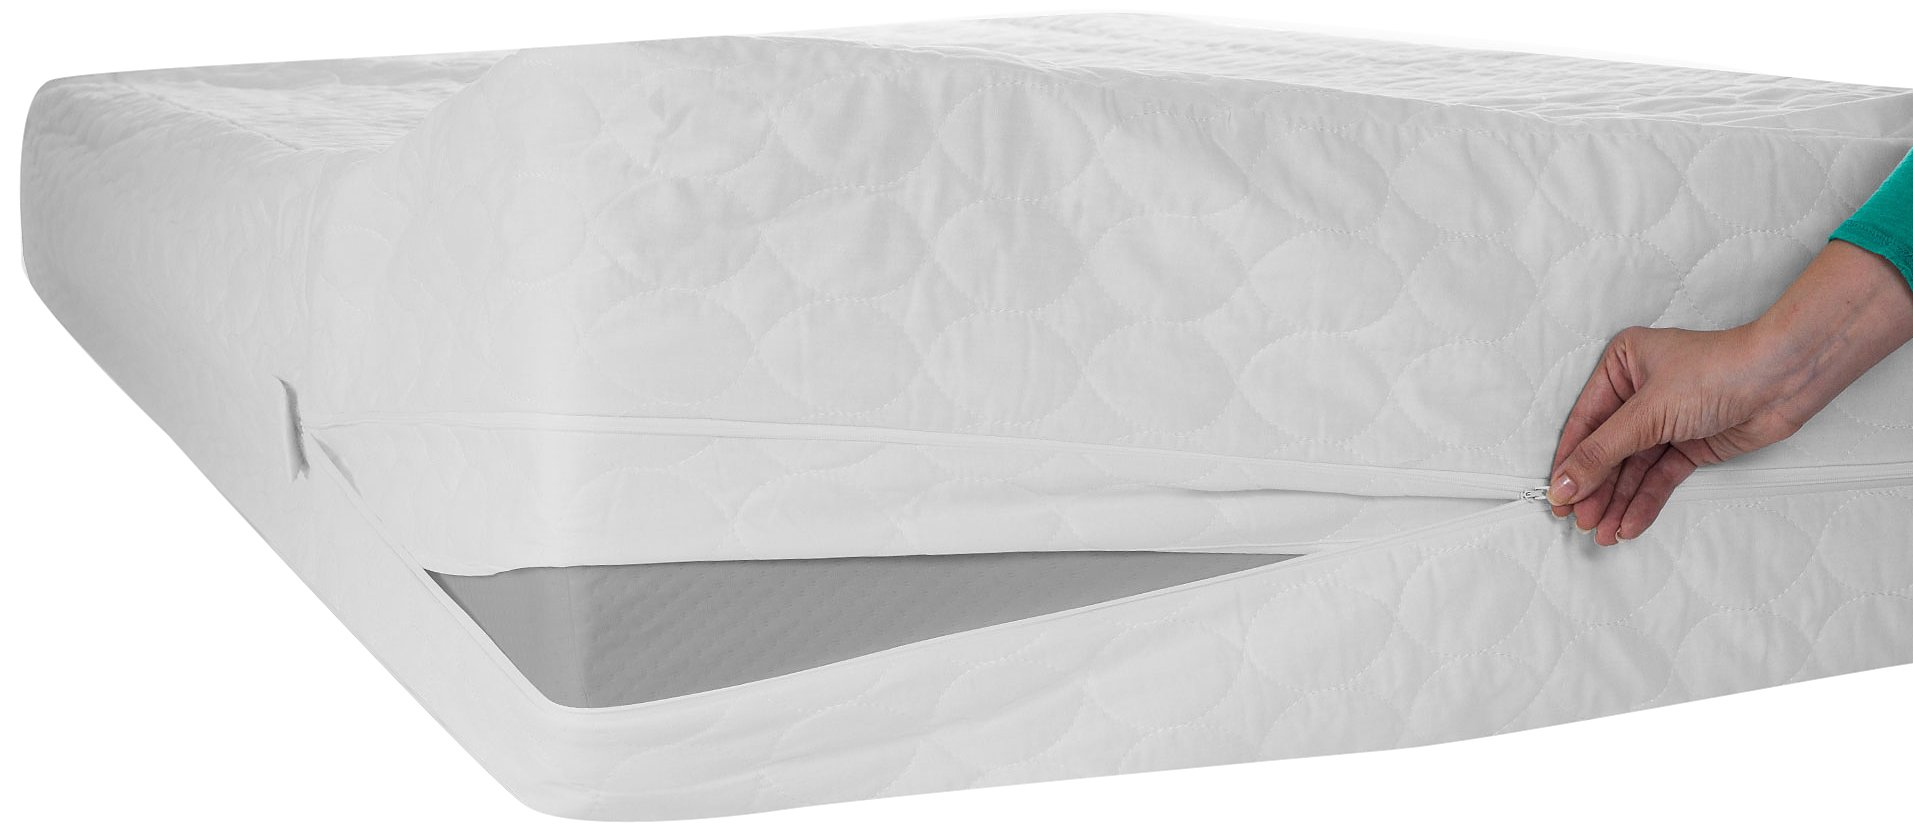 Remedy Bed Bug Dust Mite Mattress Protector, Twin X-Large